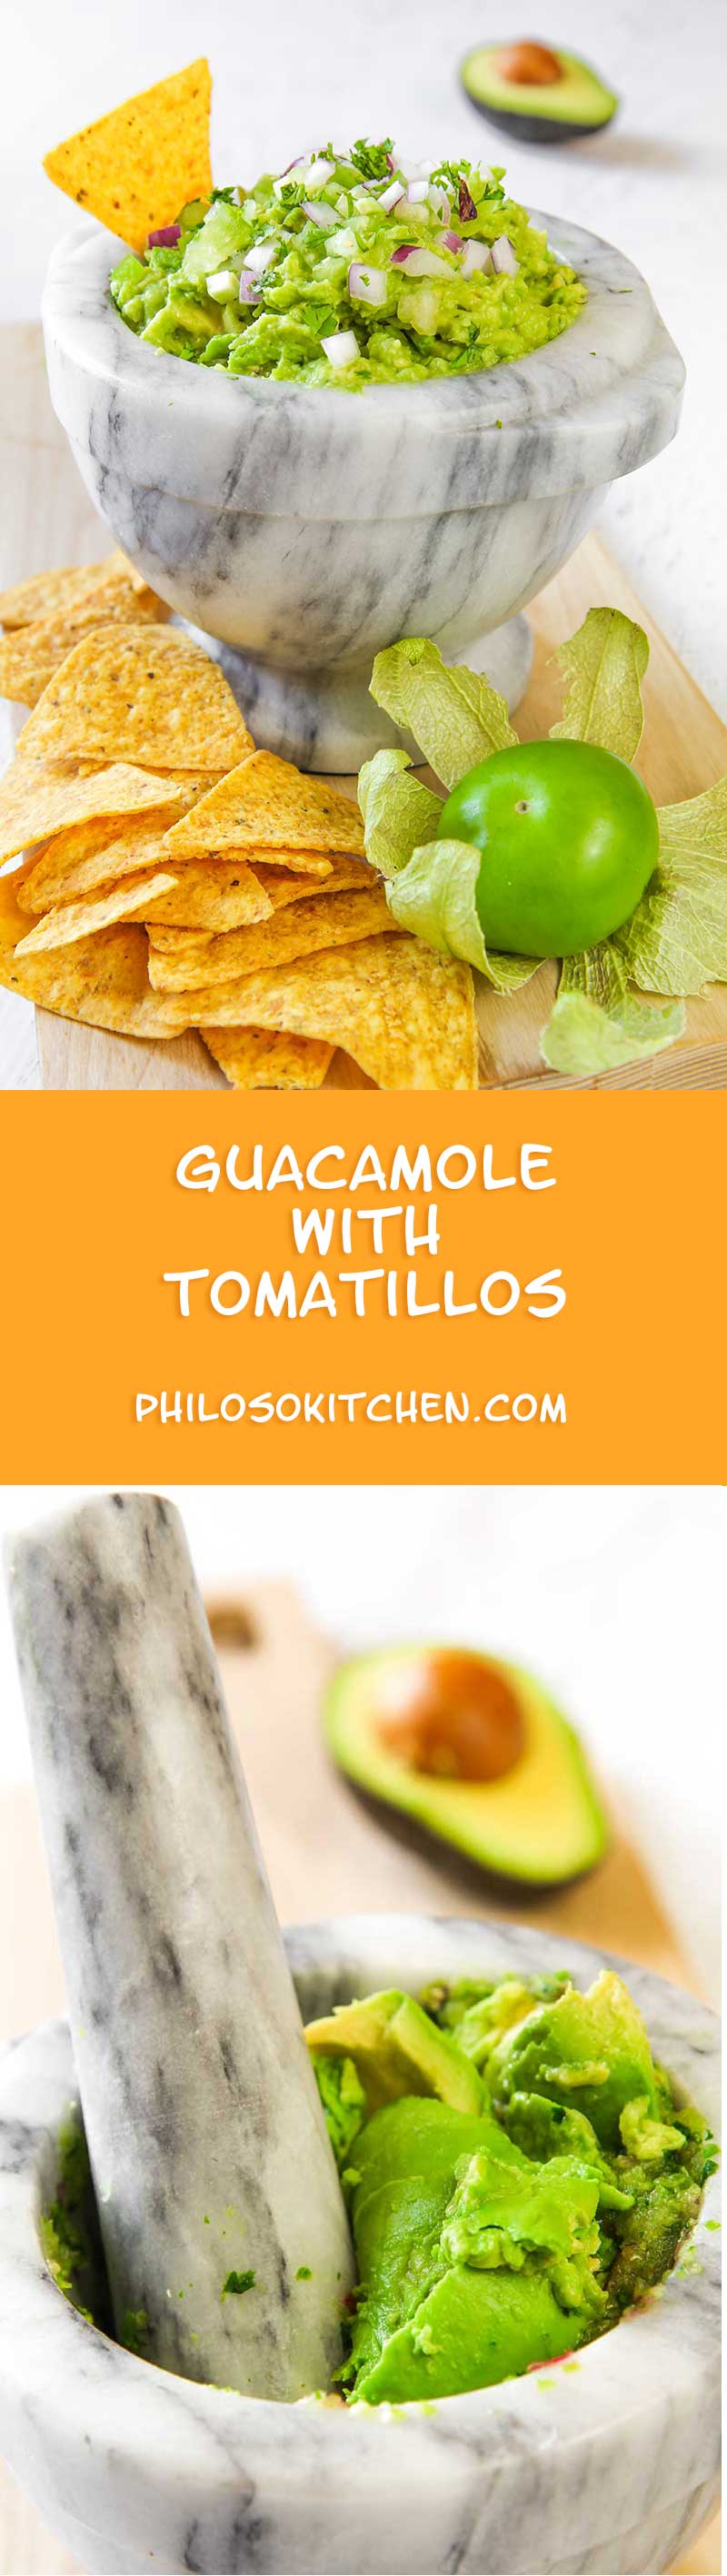 GUACAMOLE WITH TOLATILLO